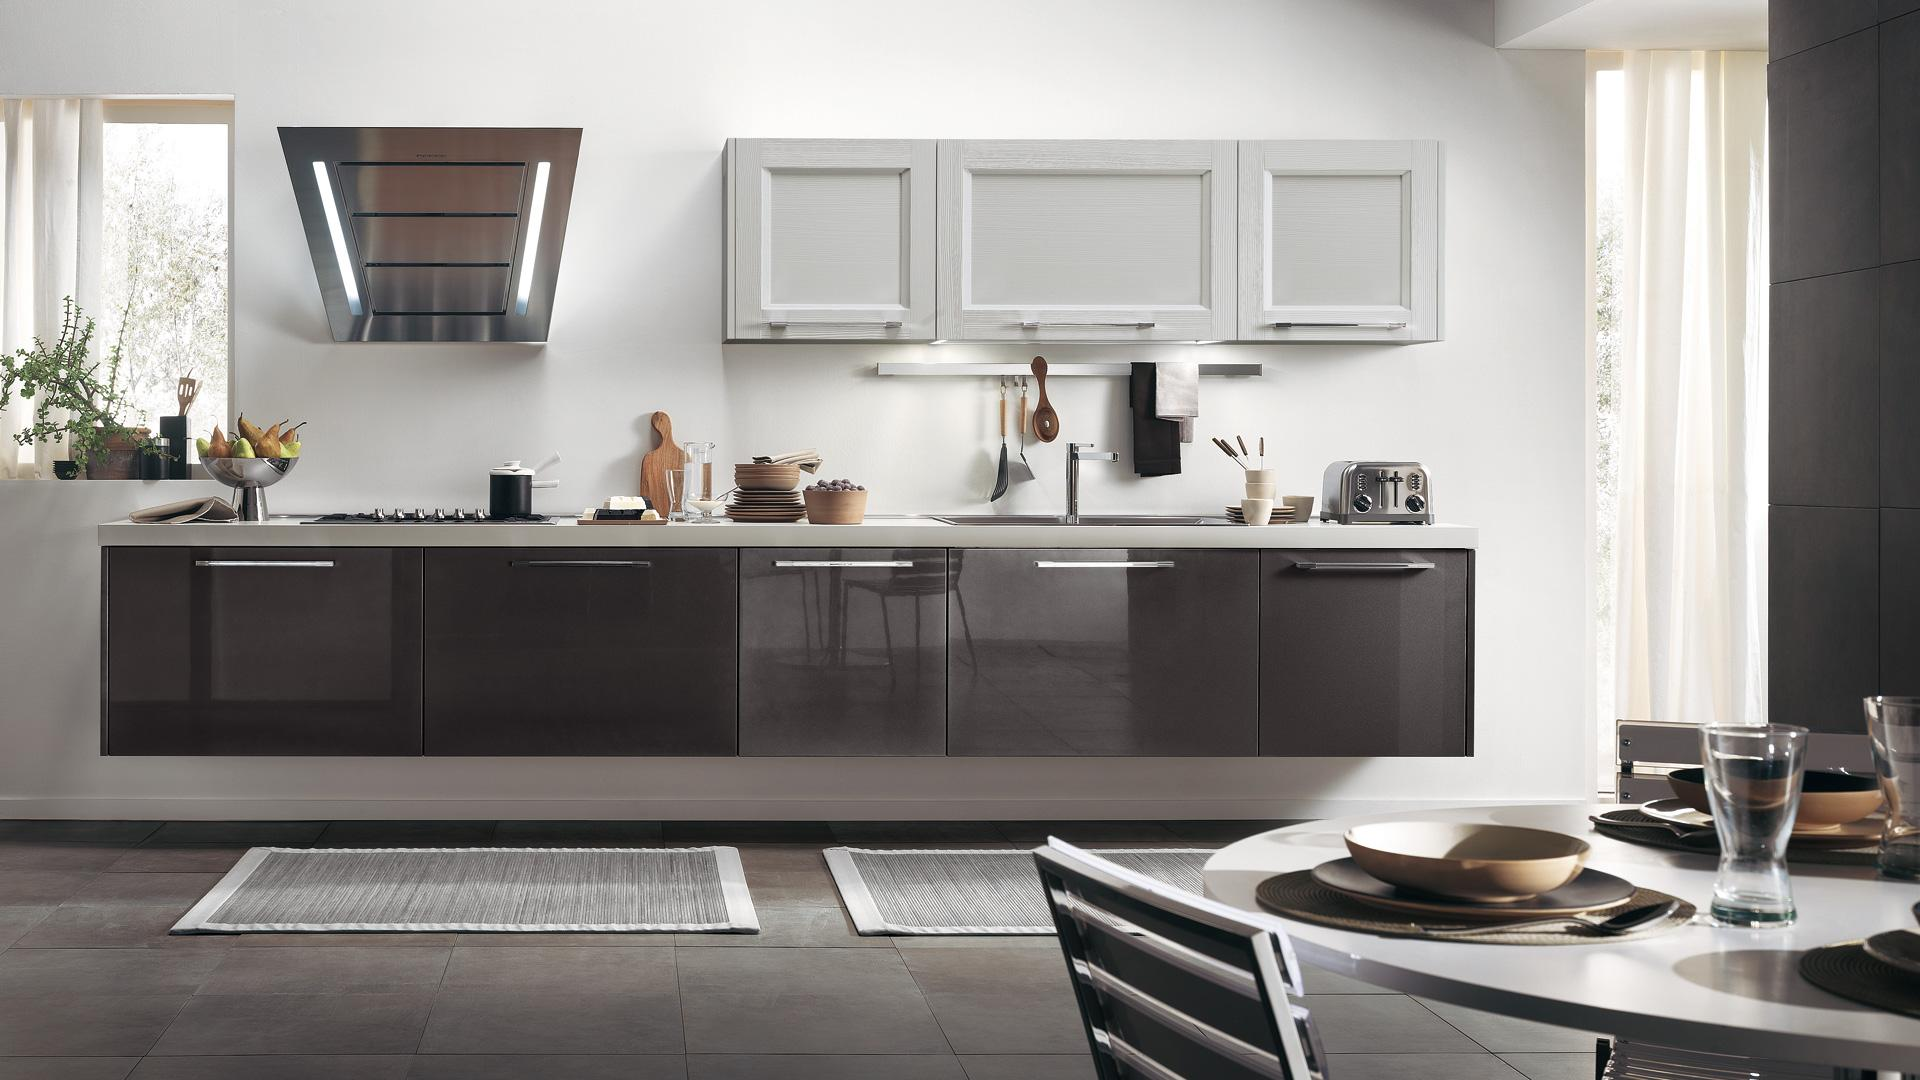 Centro cucine lube creo kitchens verona villafranca for Cucine outlet verona